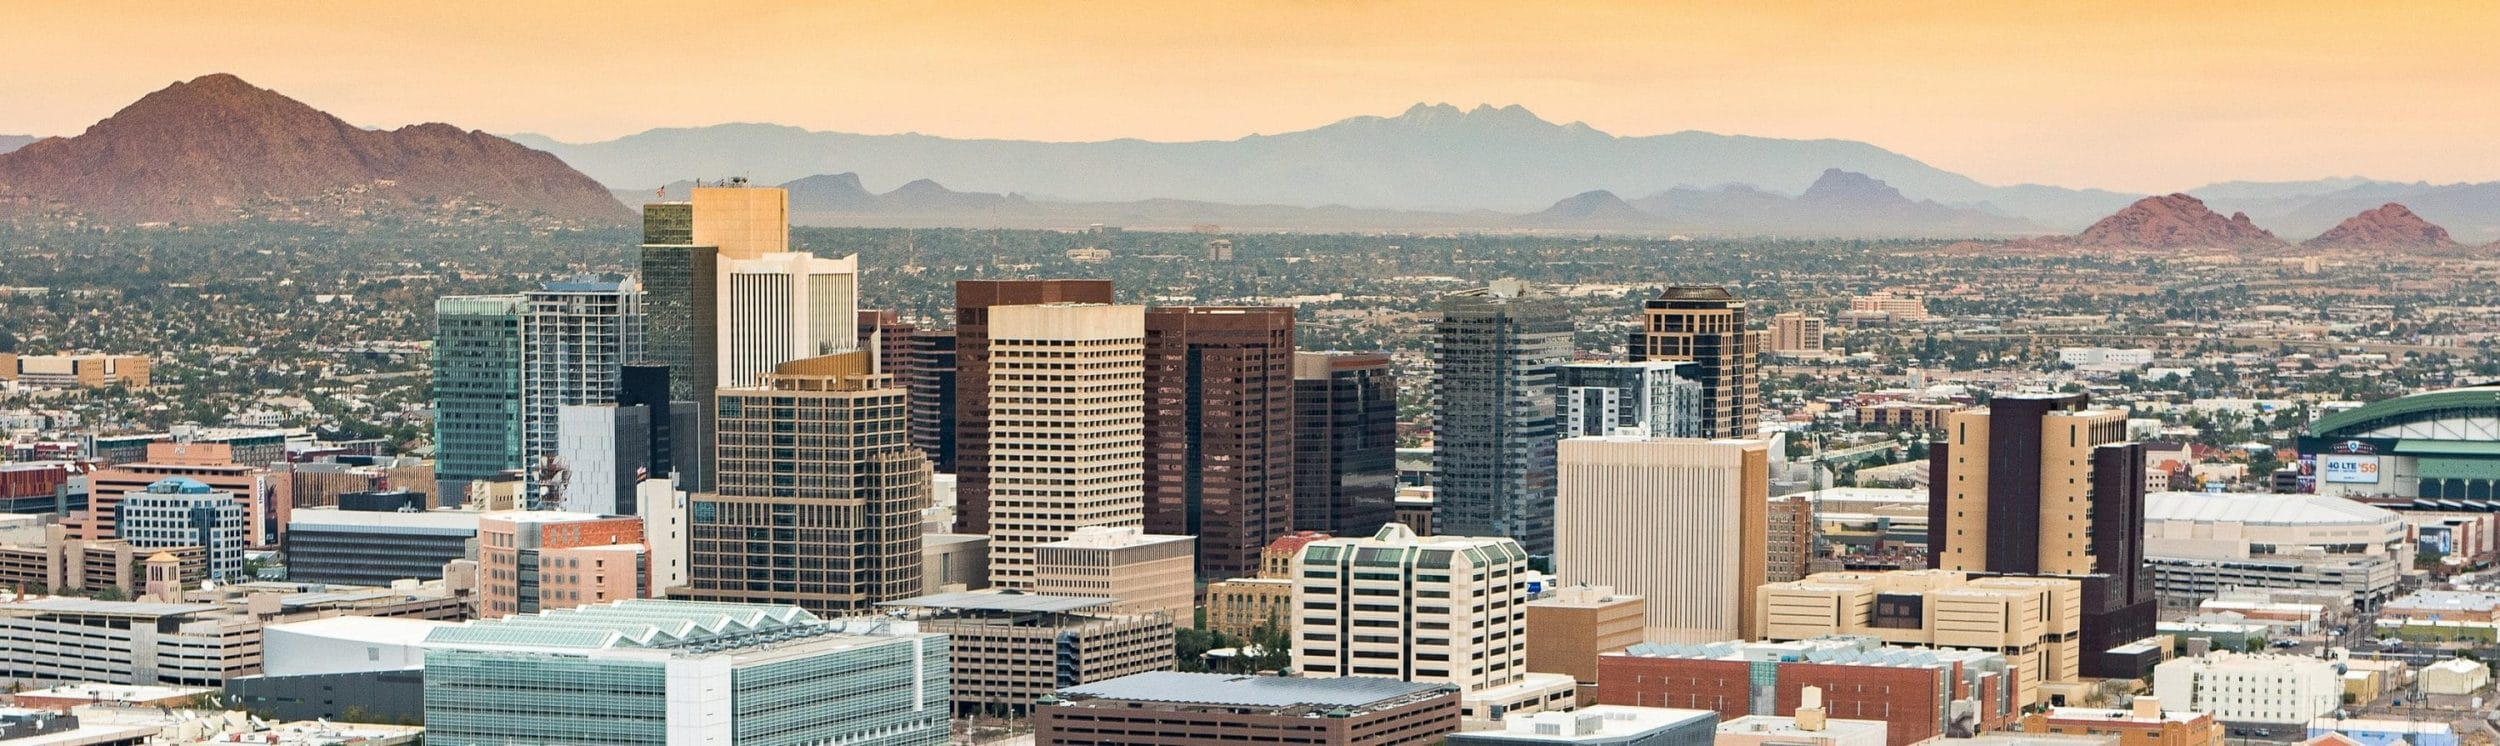 Downtown Phoenix city skyline